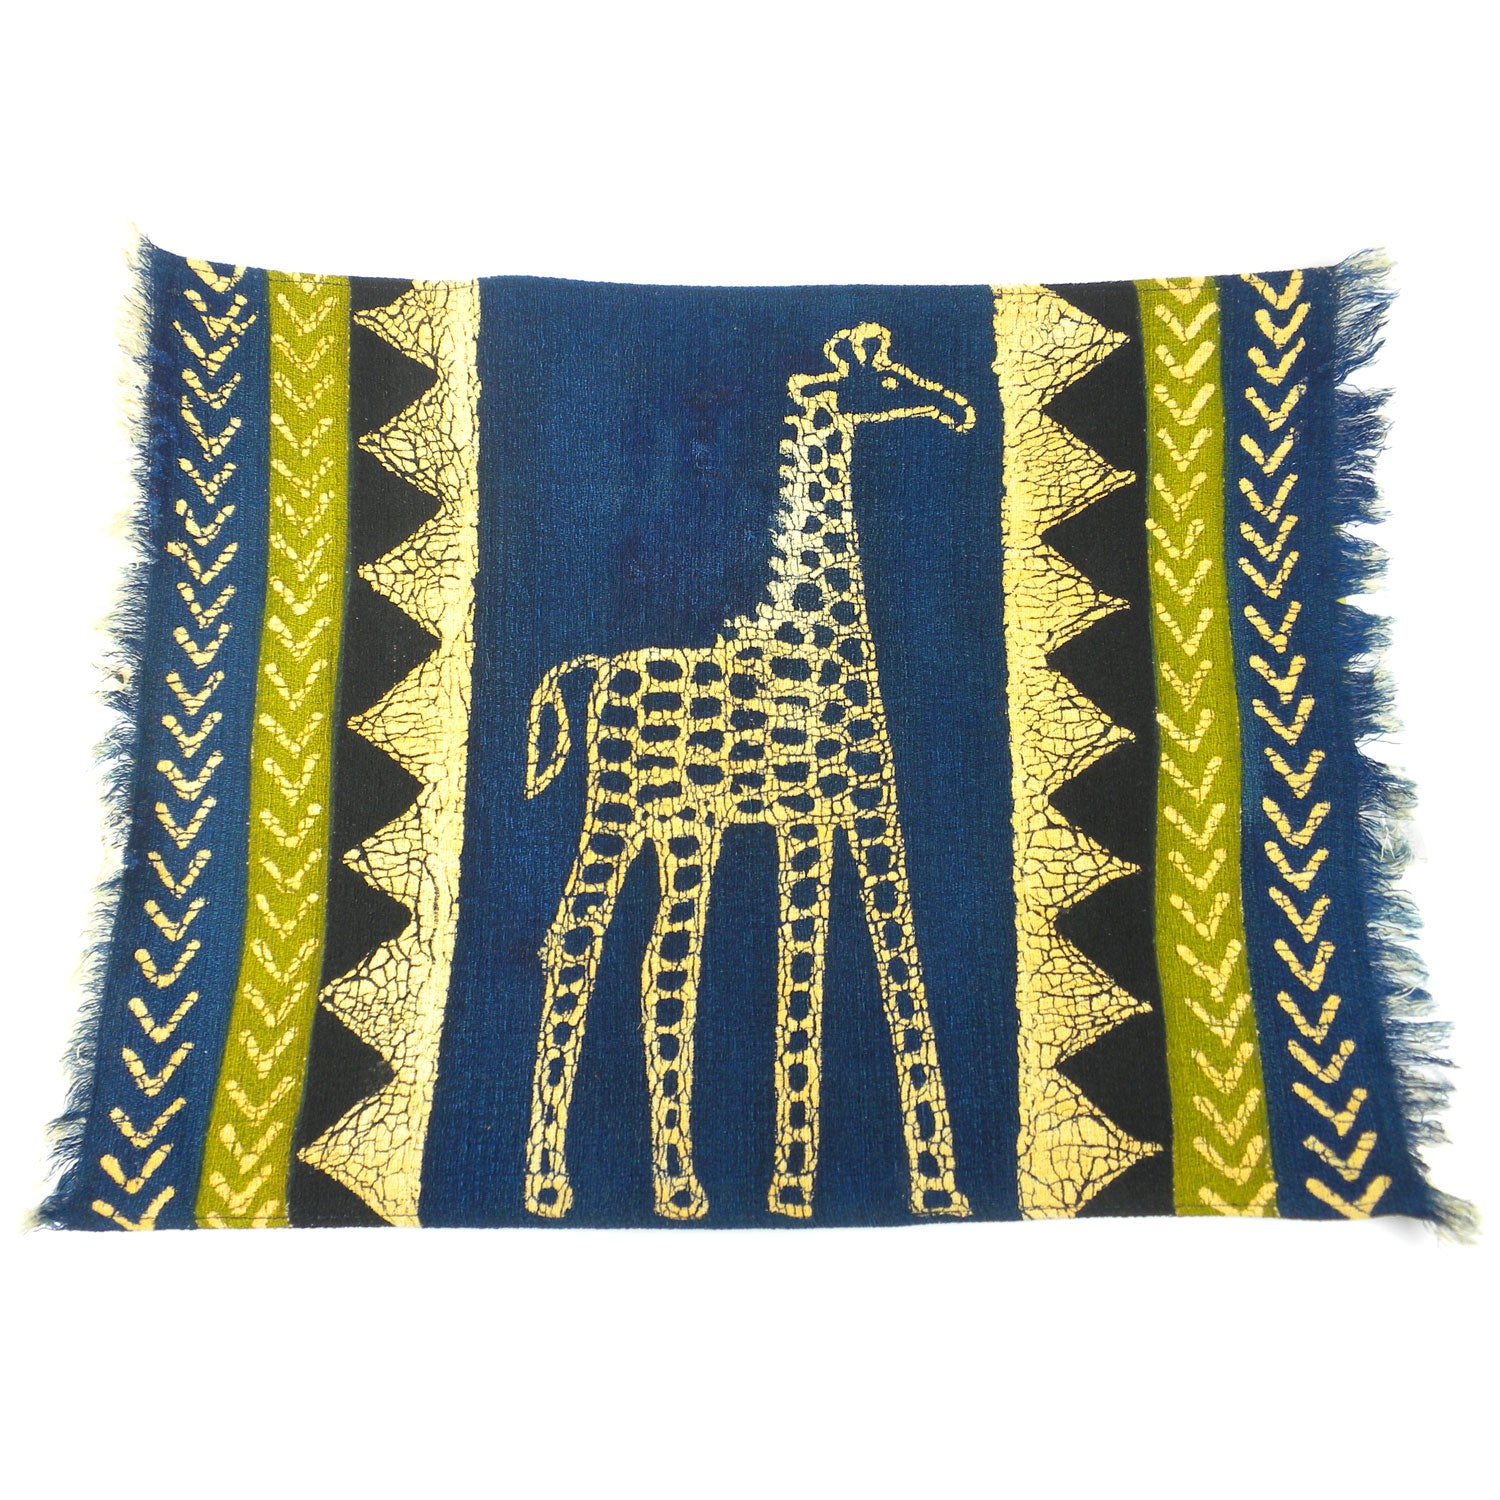 Green Giraffe Placemat, set of 4